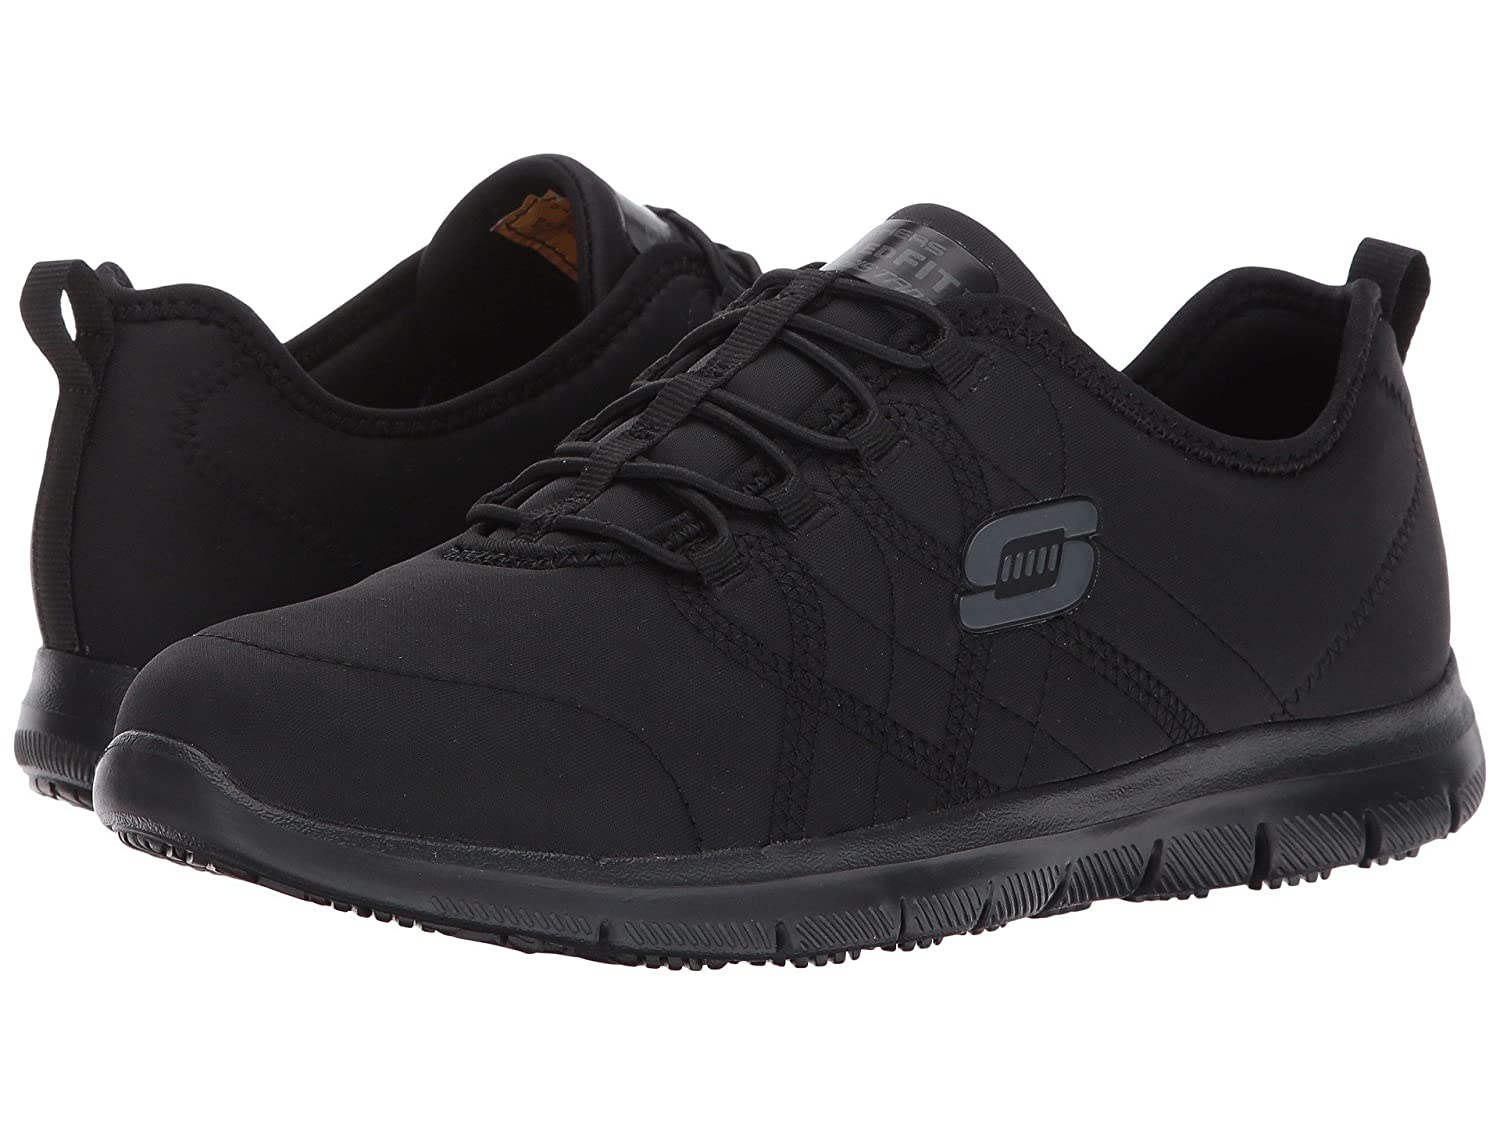 (スケッチャーズ) SKECHERS レディースワークシューズナースシューズ靴 Dighton Bricelyn [並行輸入品] B07FRZWPSY 7 (24cm) B Medium|Black Synthetic/Leather Black Synthetic/Leather 7 (24cm) B Medium